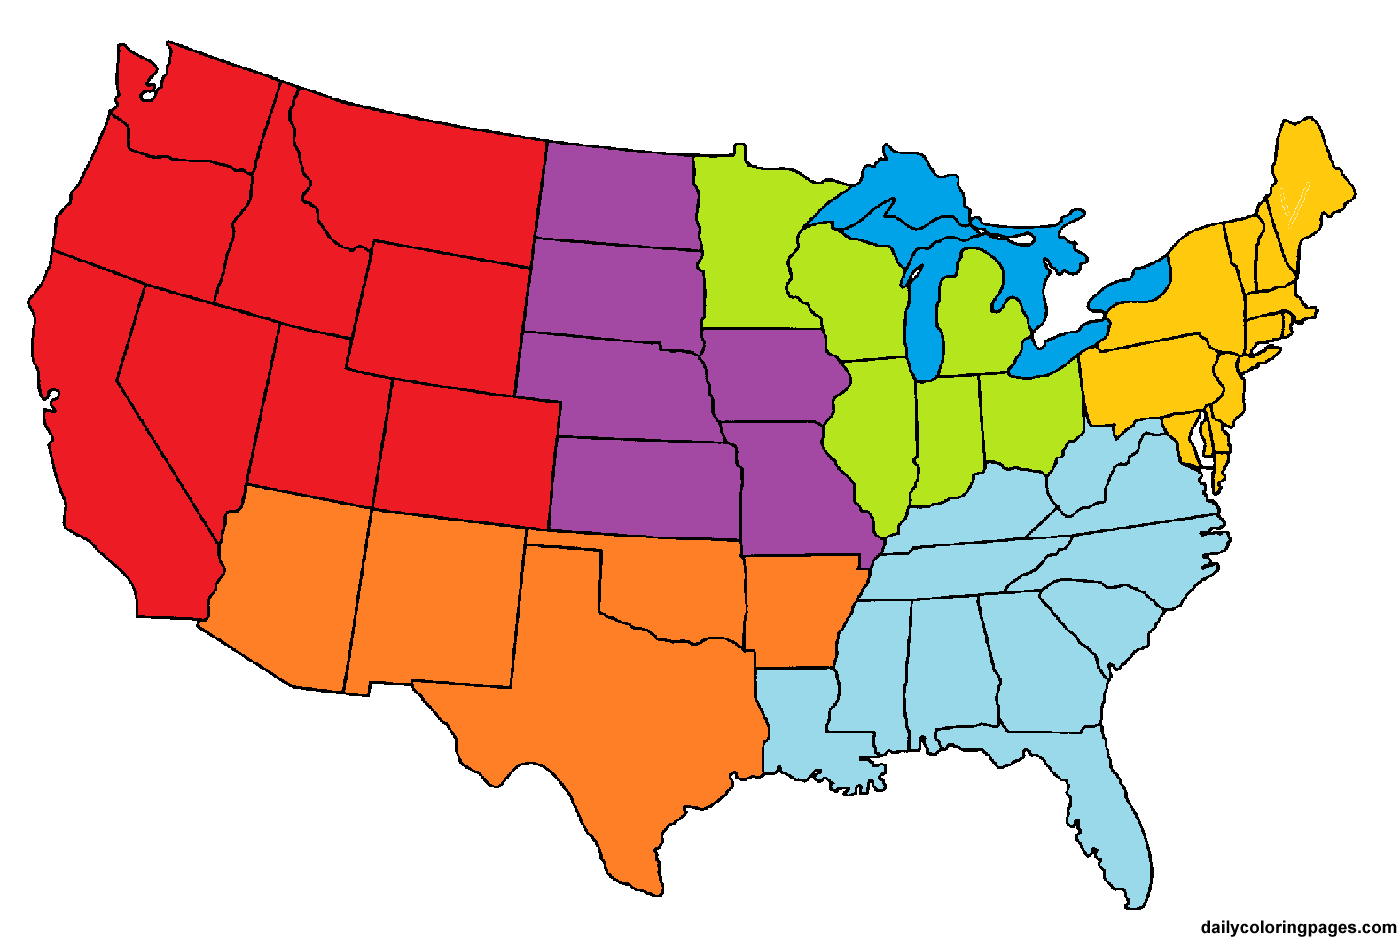 50 States and Capitals SONG by region! Exactly what we need ... on learning 50 states, outline 50 states, list 50 states, sing 50 states, match 50 states, name 50 states, show 50 states, practice 50 states, identify 50 states, study 50 states, label 50 states, order 50 states,